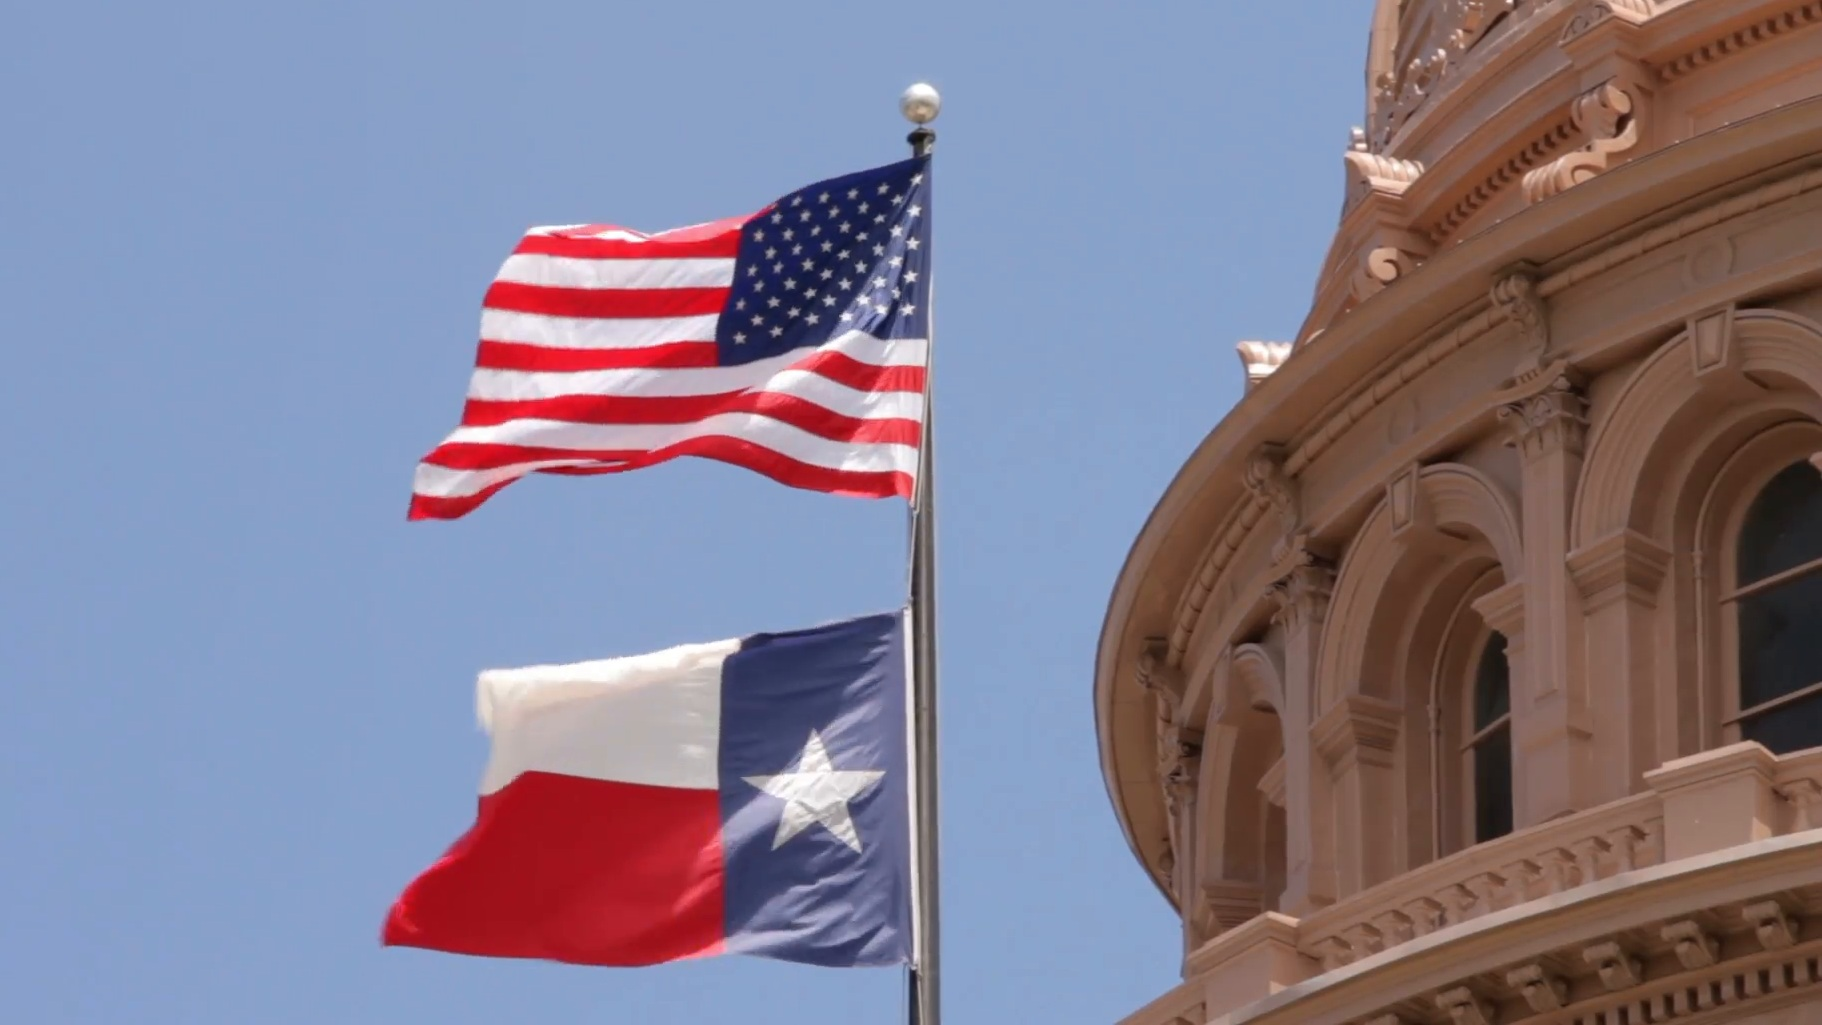 us-and-texas-flags-flying-over-texas-state-capitol-building-austin-usa_n14nhxn3__F0000.jpg